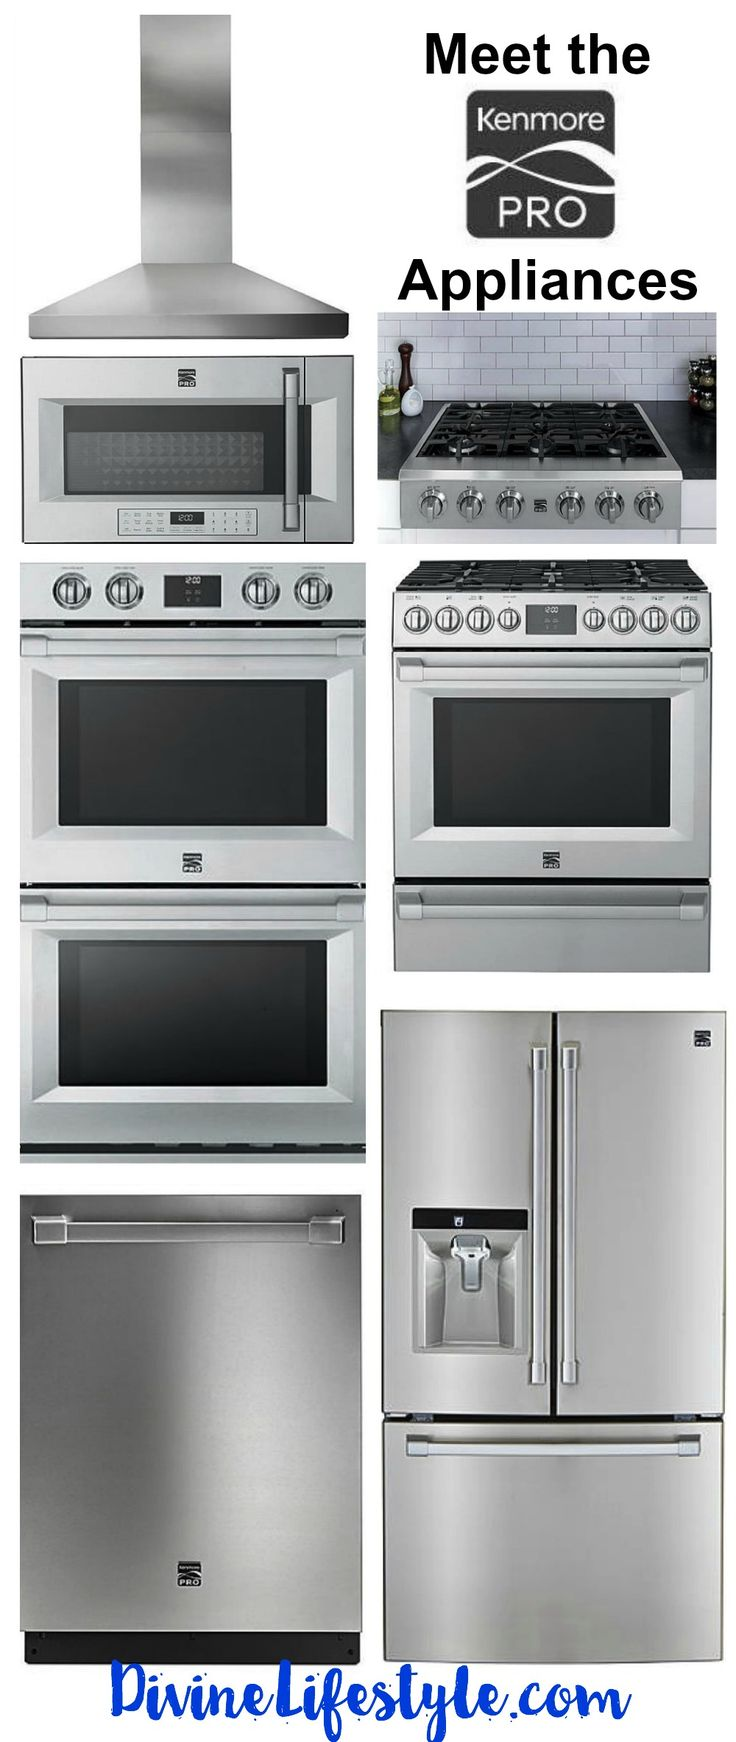 Uncategorized Trade In Kitchen Appliances best 25 commercial appliances ideas on pinterest building the kitchen of your dreams do yourself a favor and checkout kenmore pro